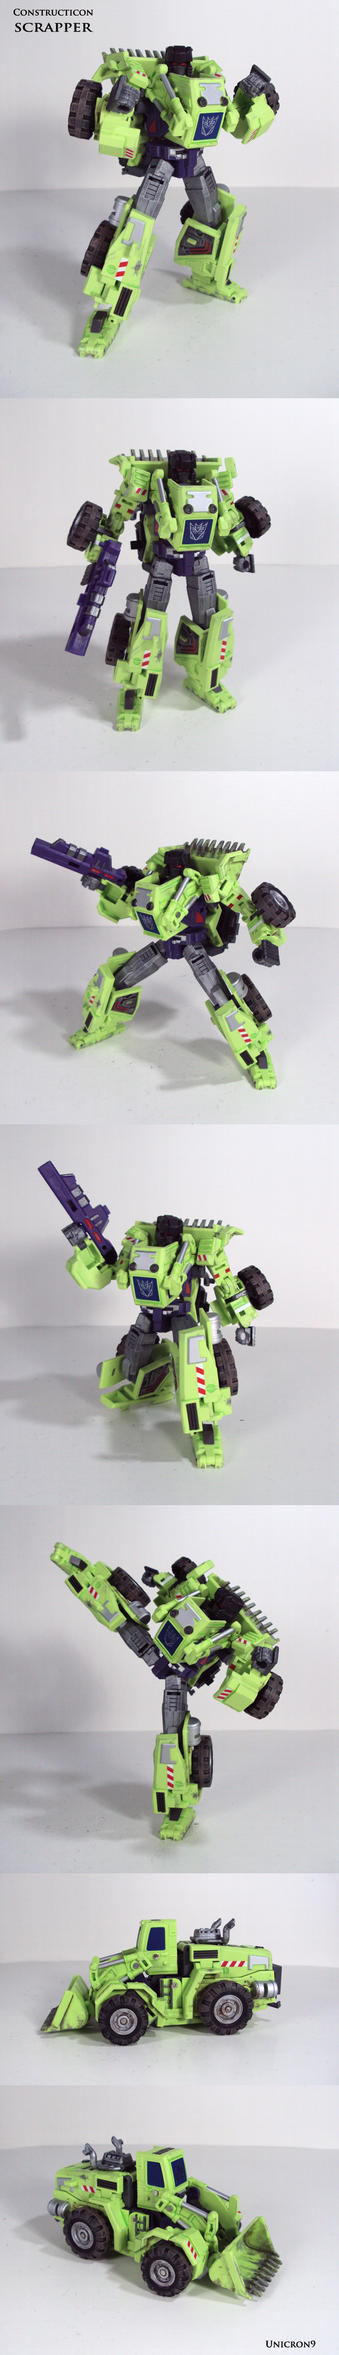 Constructicon: Scrapper by Unicron9